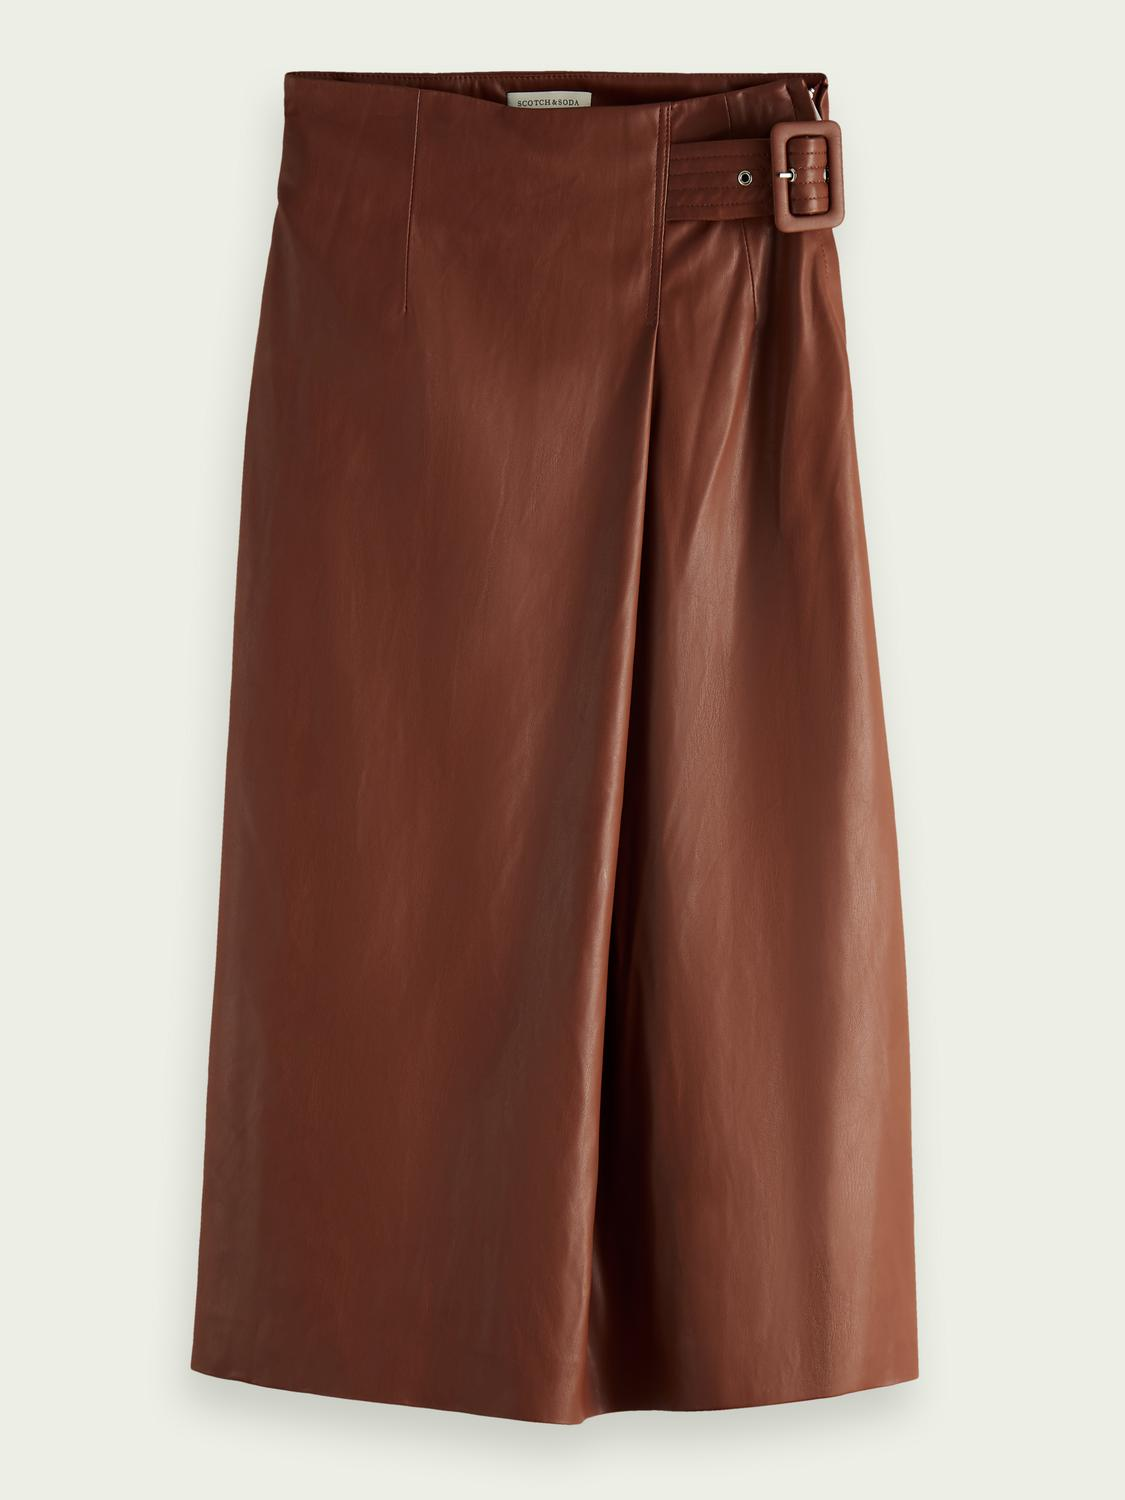 Wrap-over faux leather skirt